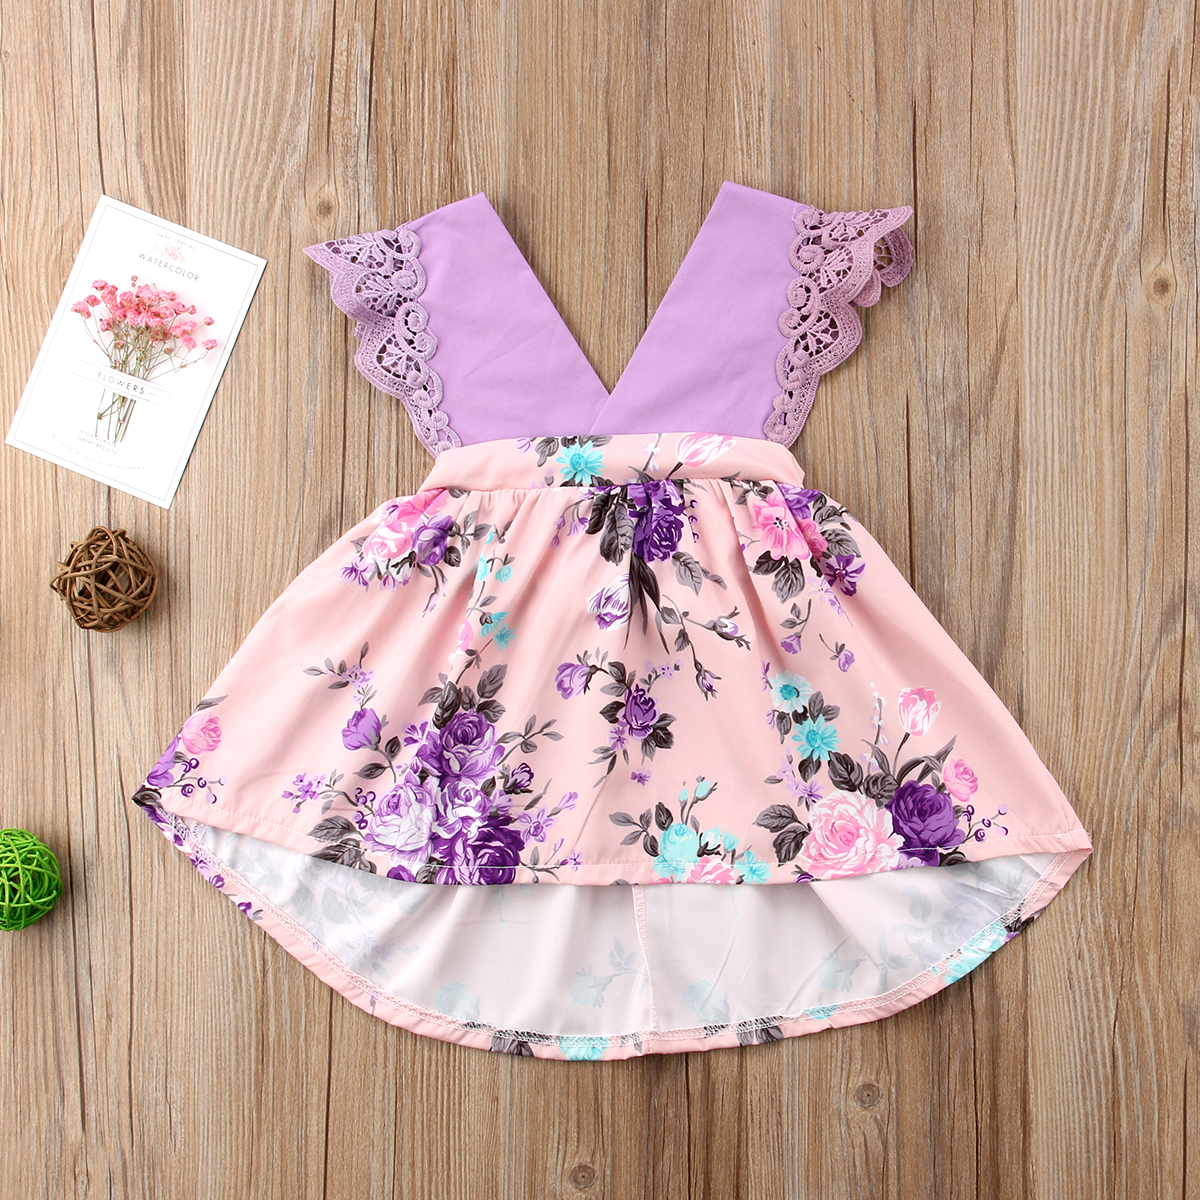 8e45ce23b7a Family Matching Outfits Toddelr Kids Baby Girls Sister Matching Floral  Jumpsuit Romper Dress Outfits Set-in Matching Family Outfits from Mother    Kids on ...